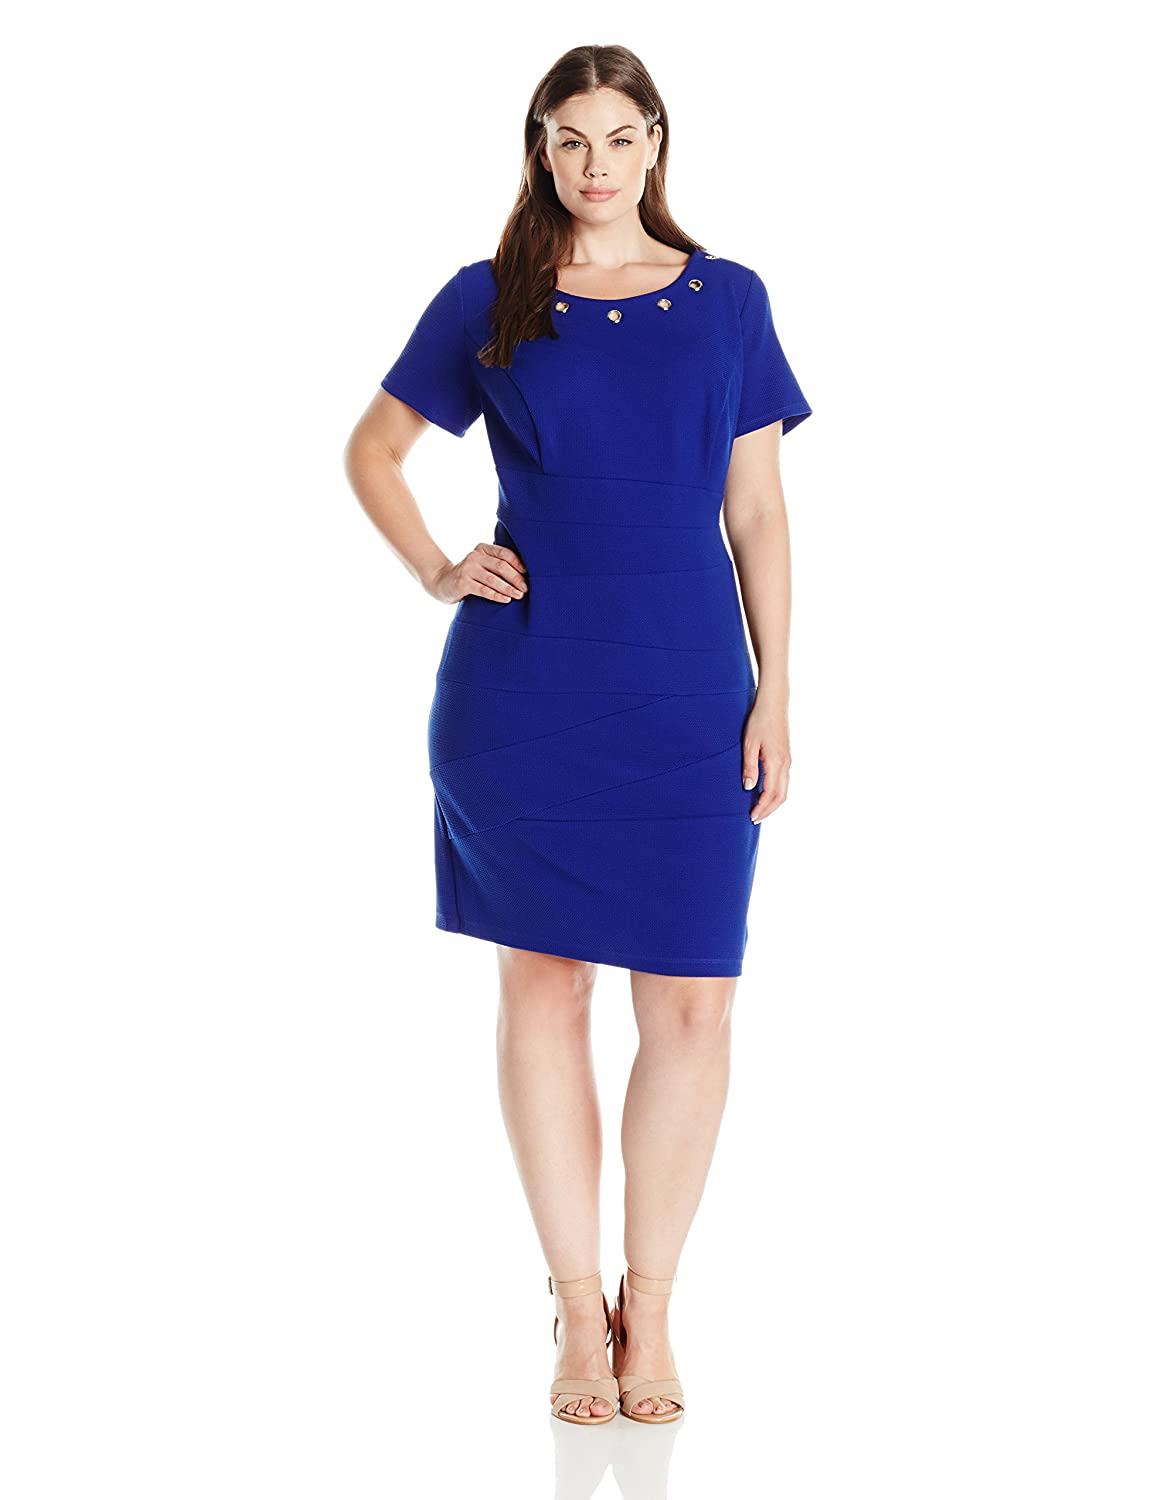 AGB Women's Plus Size Short Sleeve Dresss with Grommet Details